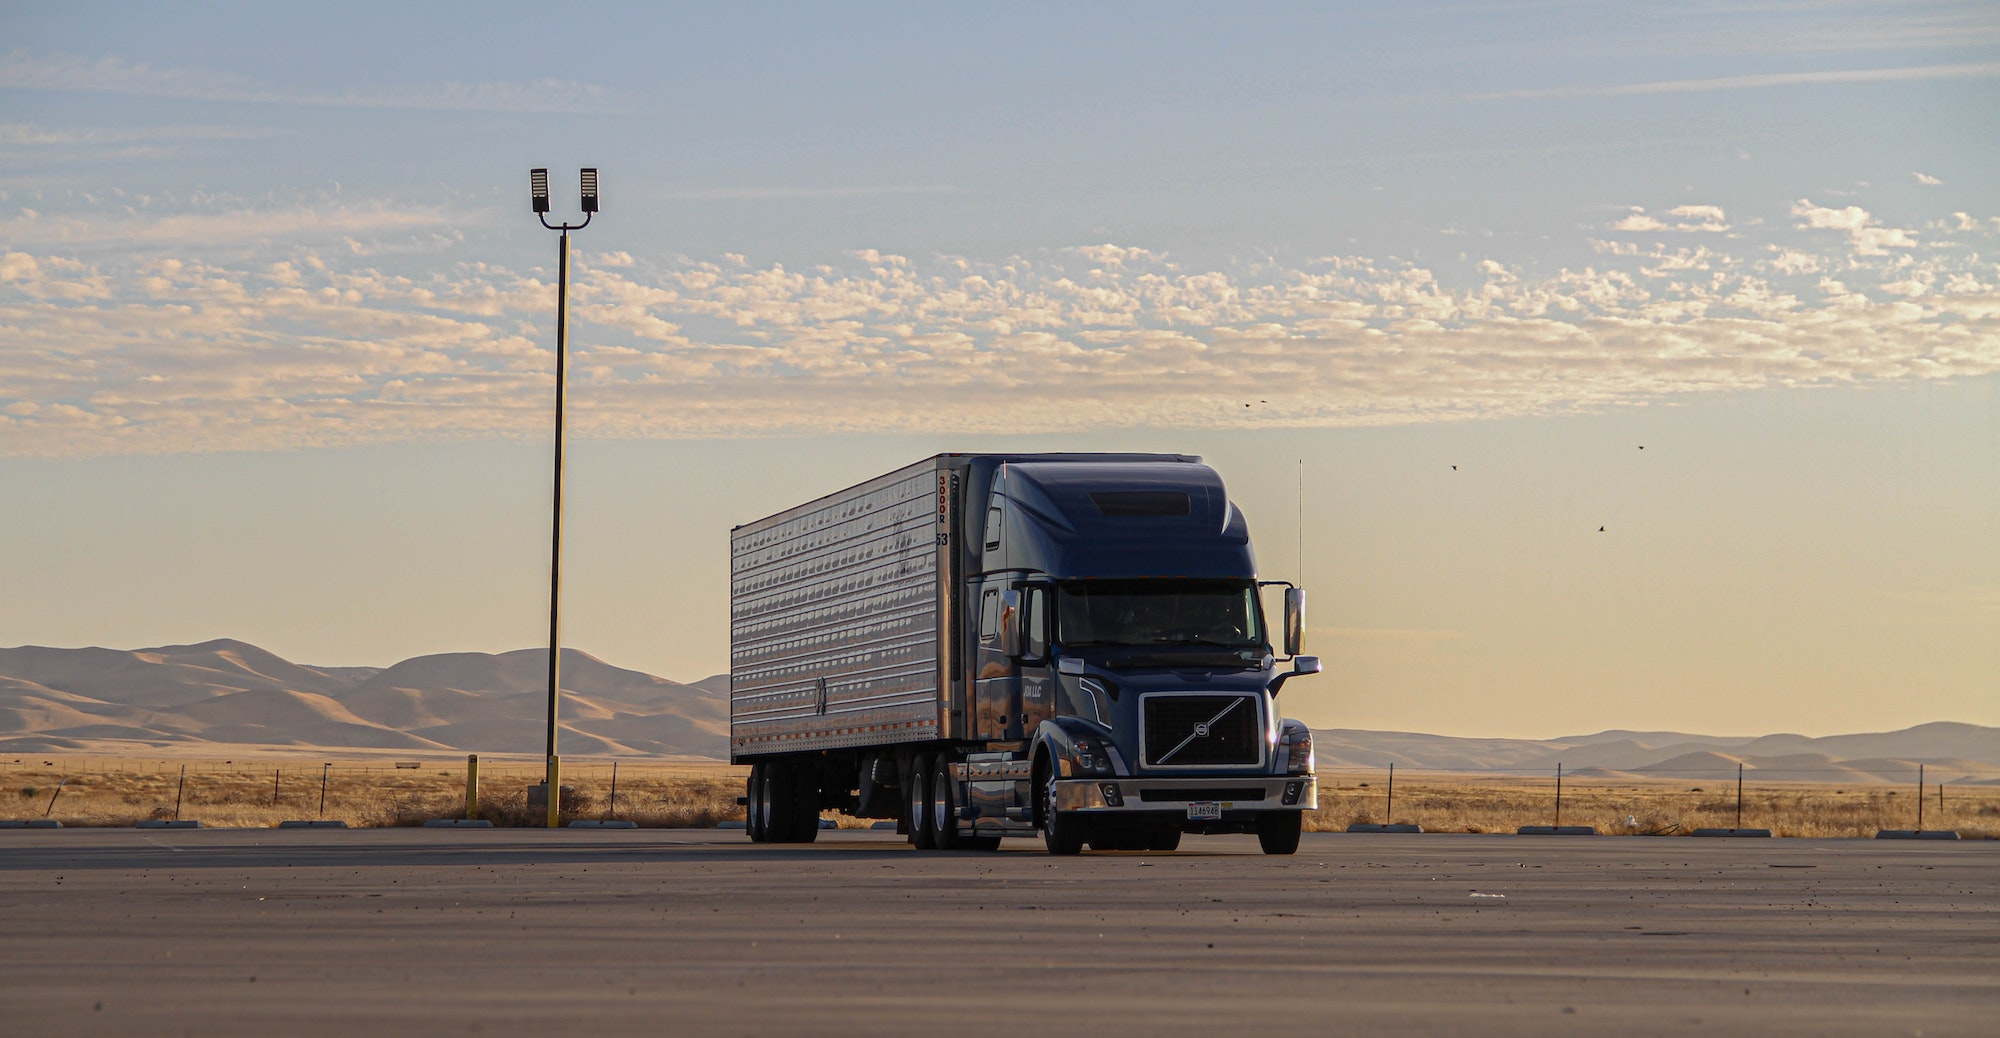 How To Vet Carriers For Your 3PL or Freight Brokerage